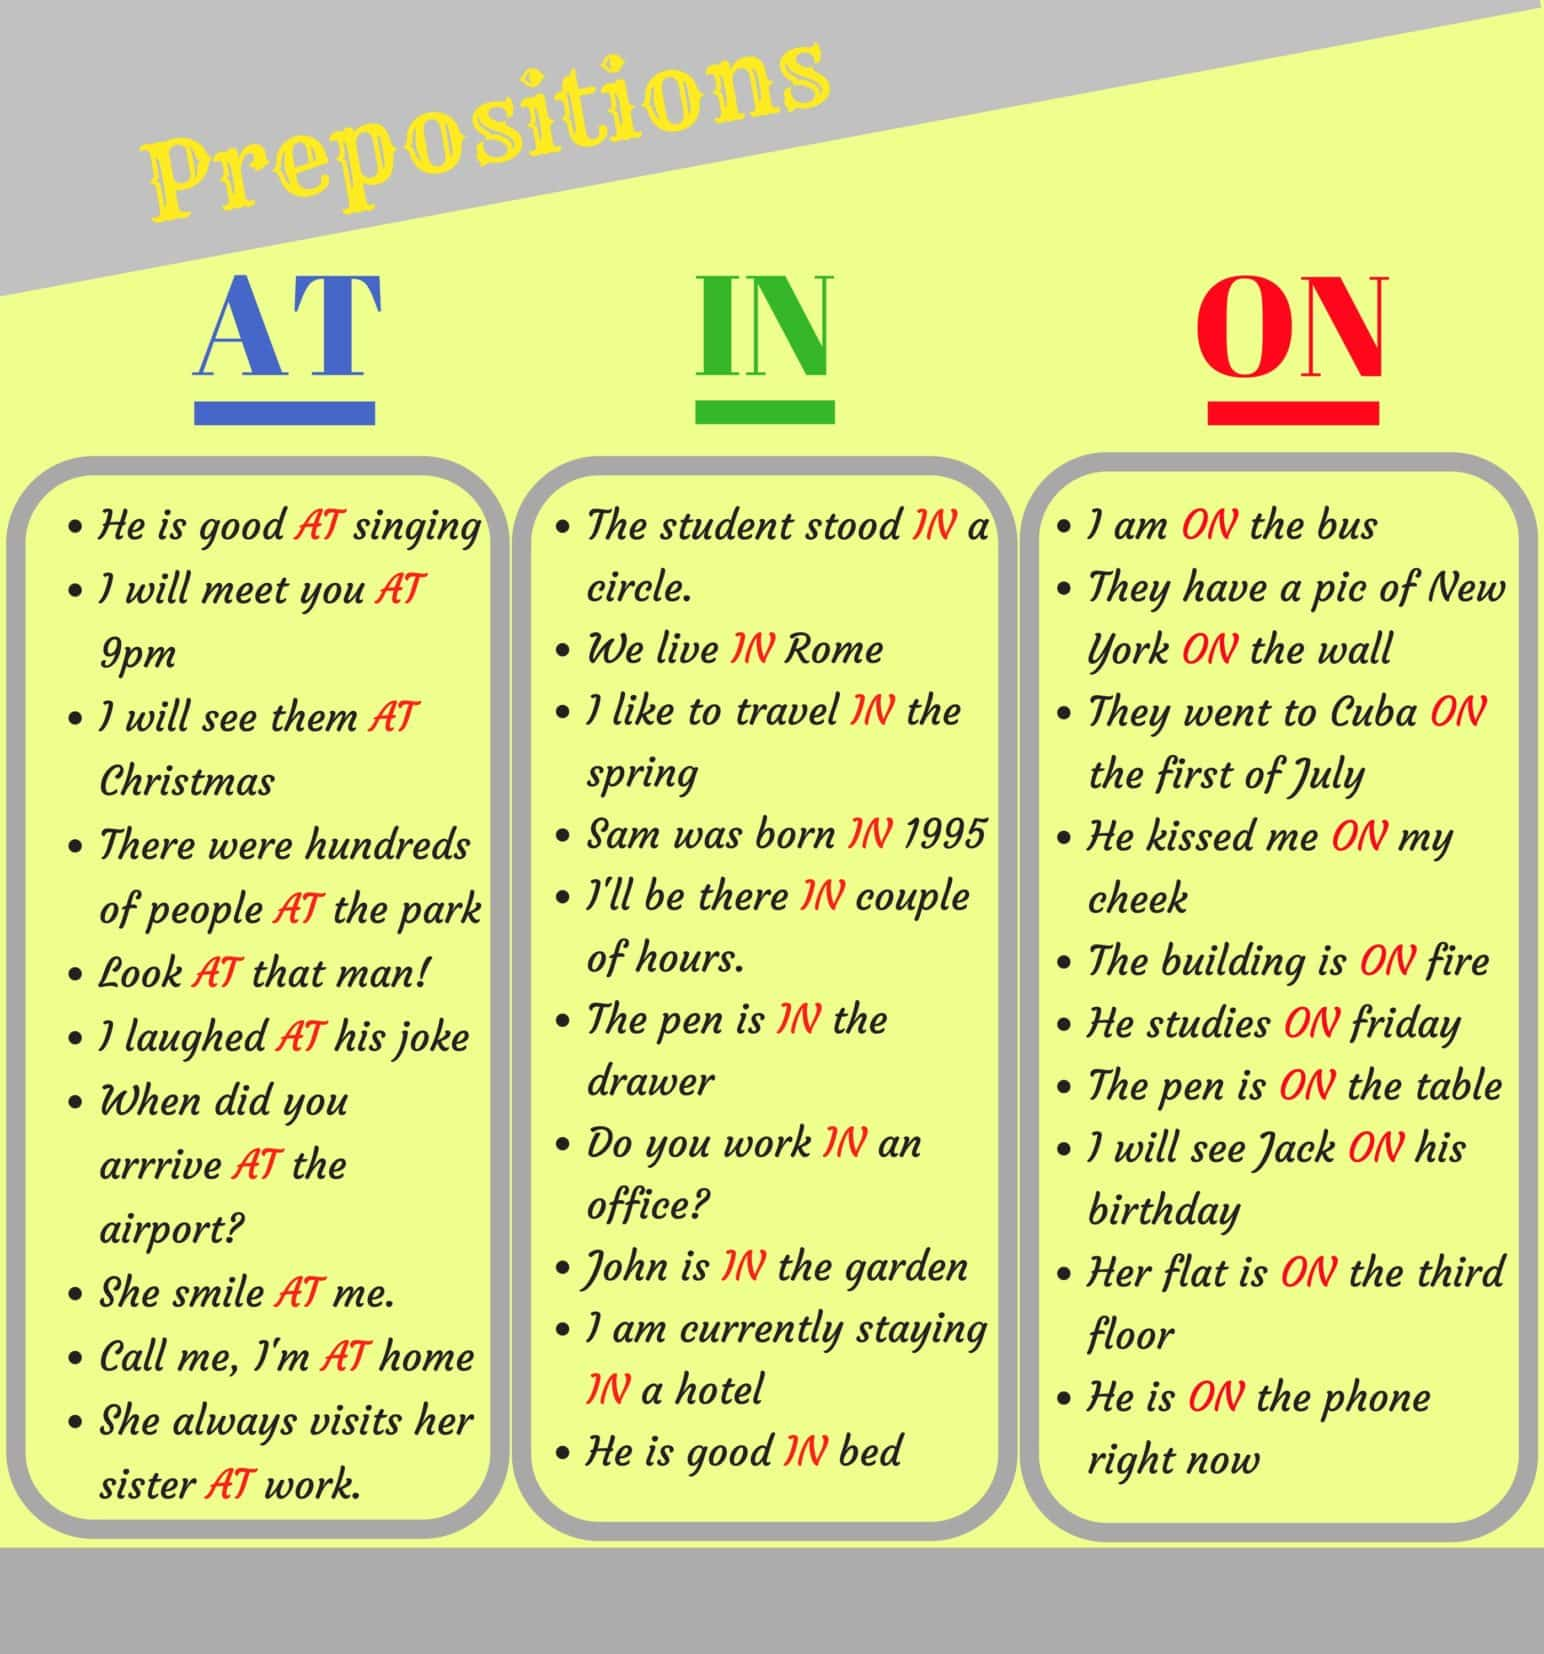 Prepositions of Time and Place AT – IN – ON